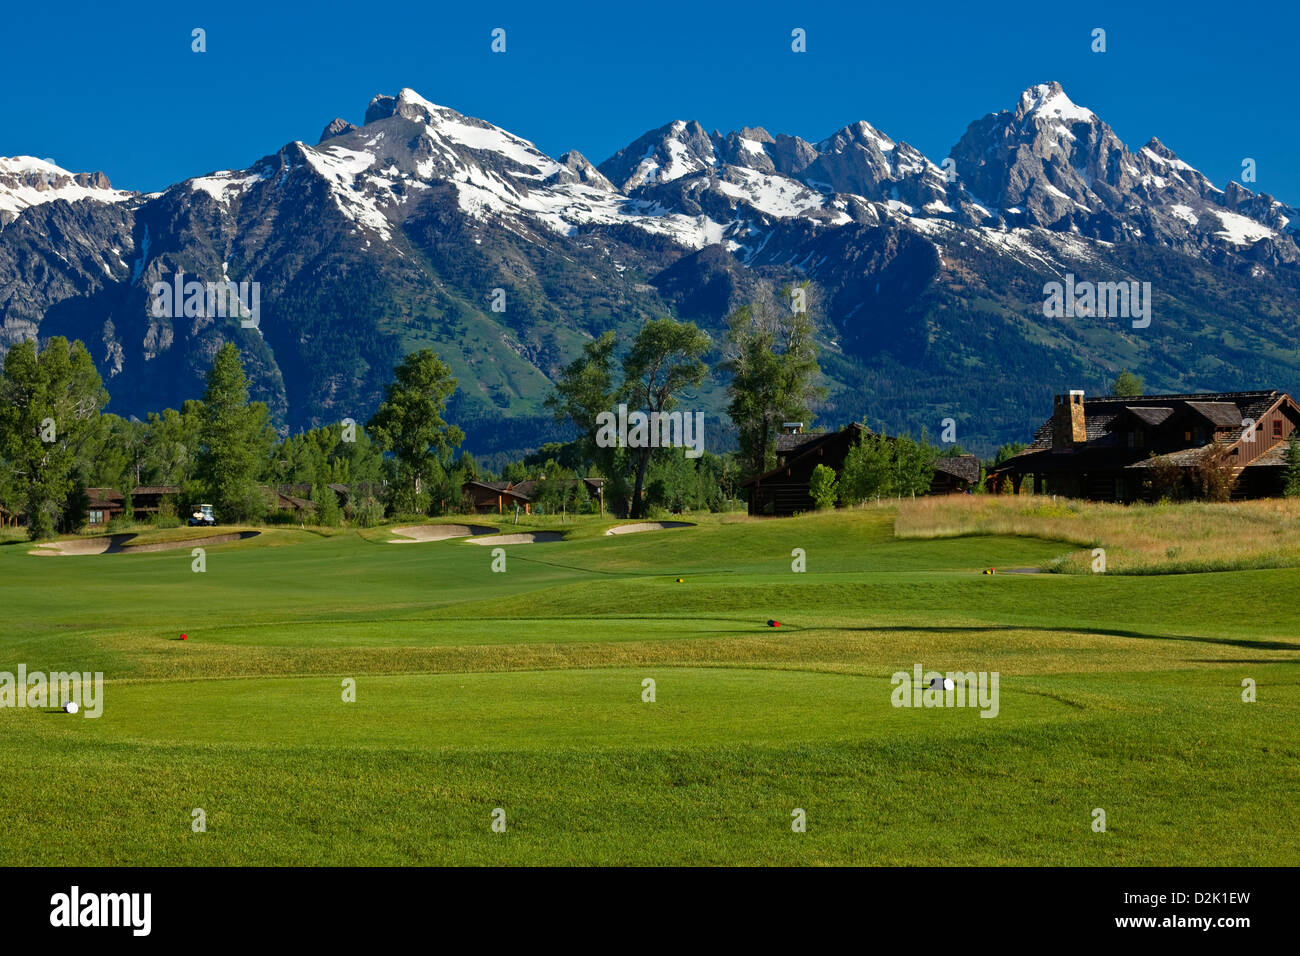 WY00226-00...WYOMING - The Teton Mountain Range in the background of the Jackson Hole Golf and Tennis Club. - Stock Image